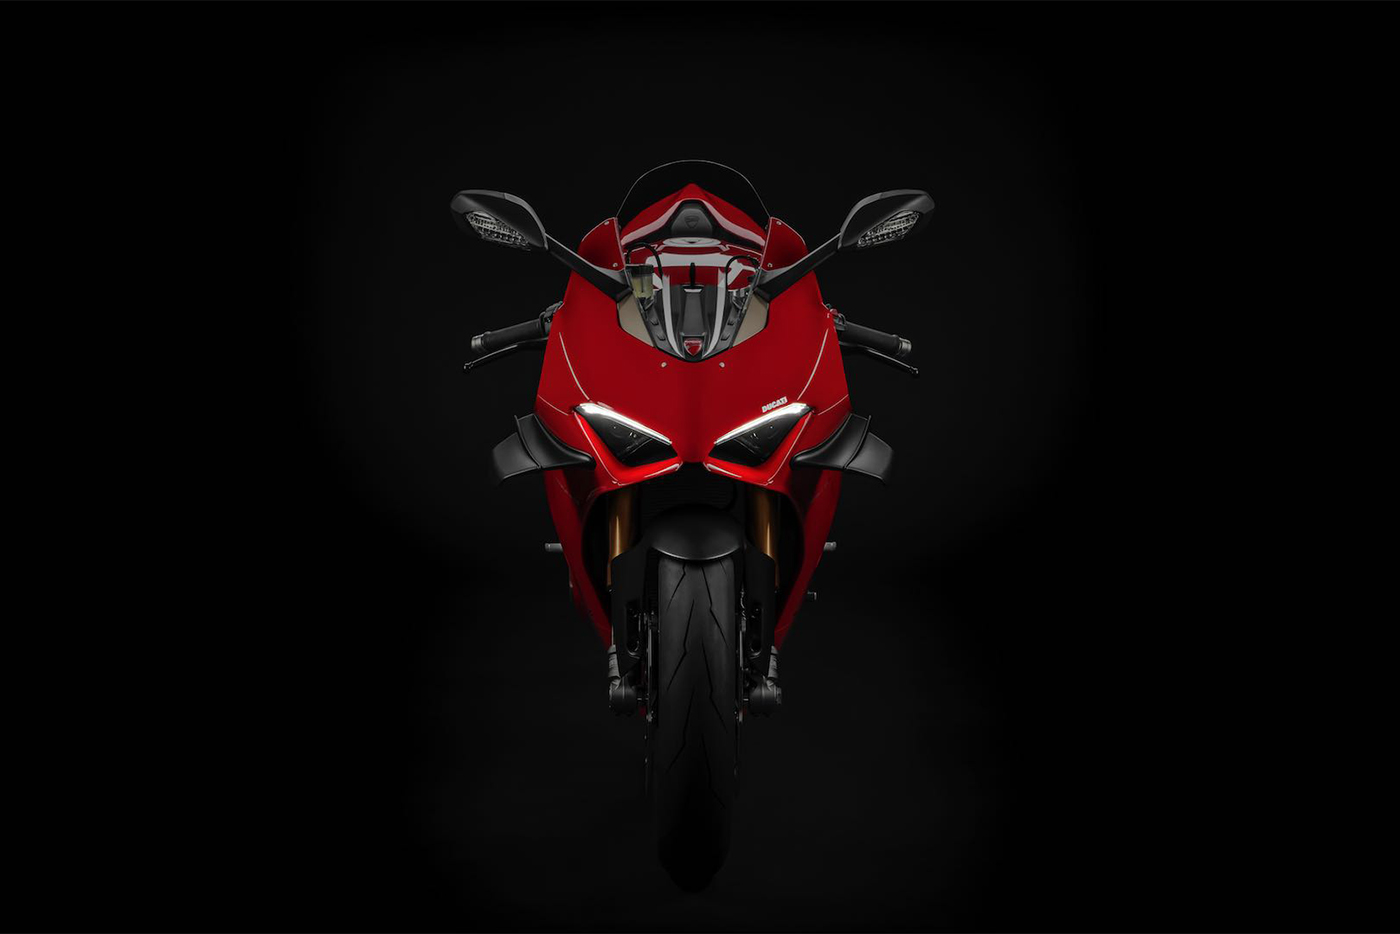 2020-ducati-panigale-v4-first-look-fast-facts-10.jpg